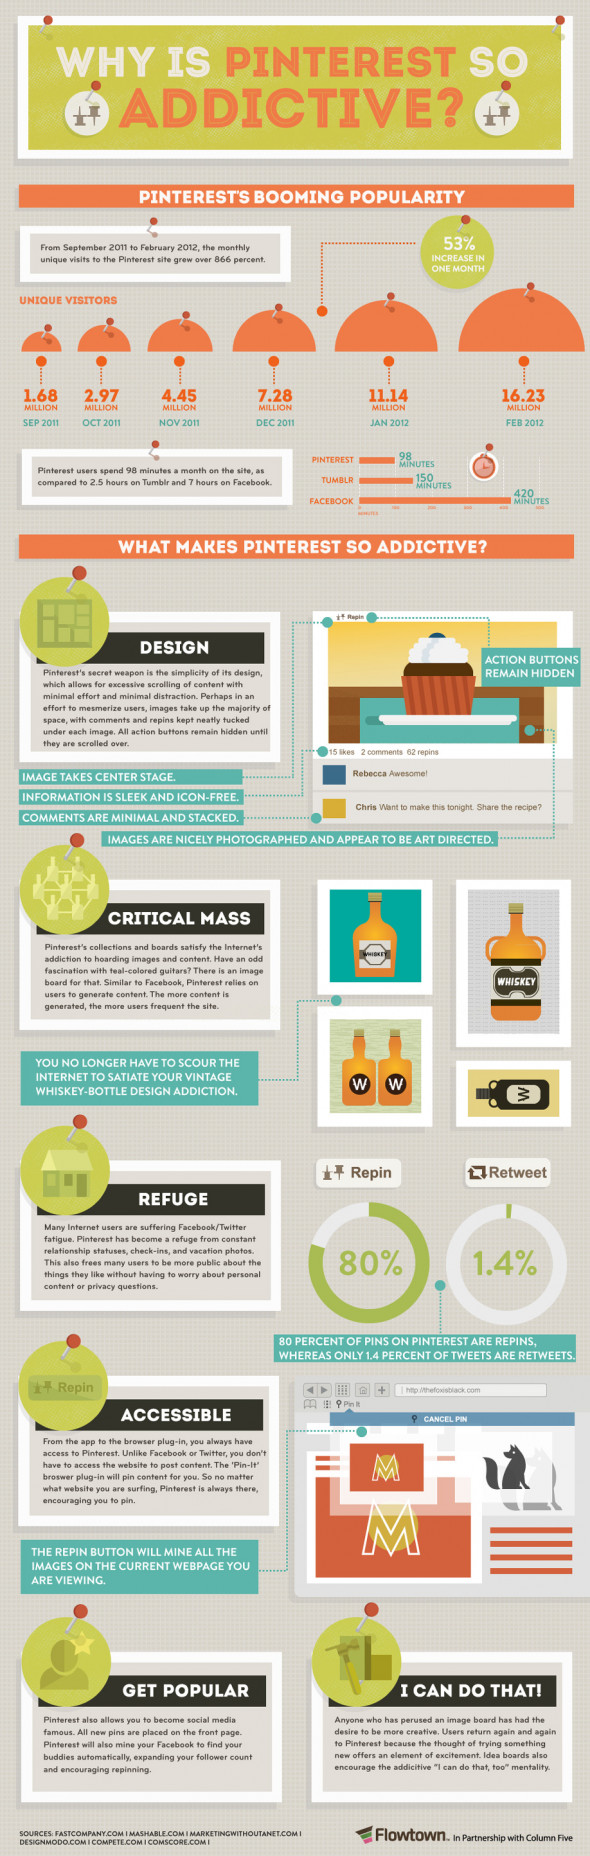 WhyIsPinterestSoAddictive 4f760919793f1 w590   Why Is Pinterest So Addictive? [INFOGRAPHIC]